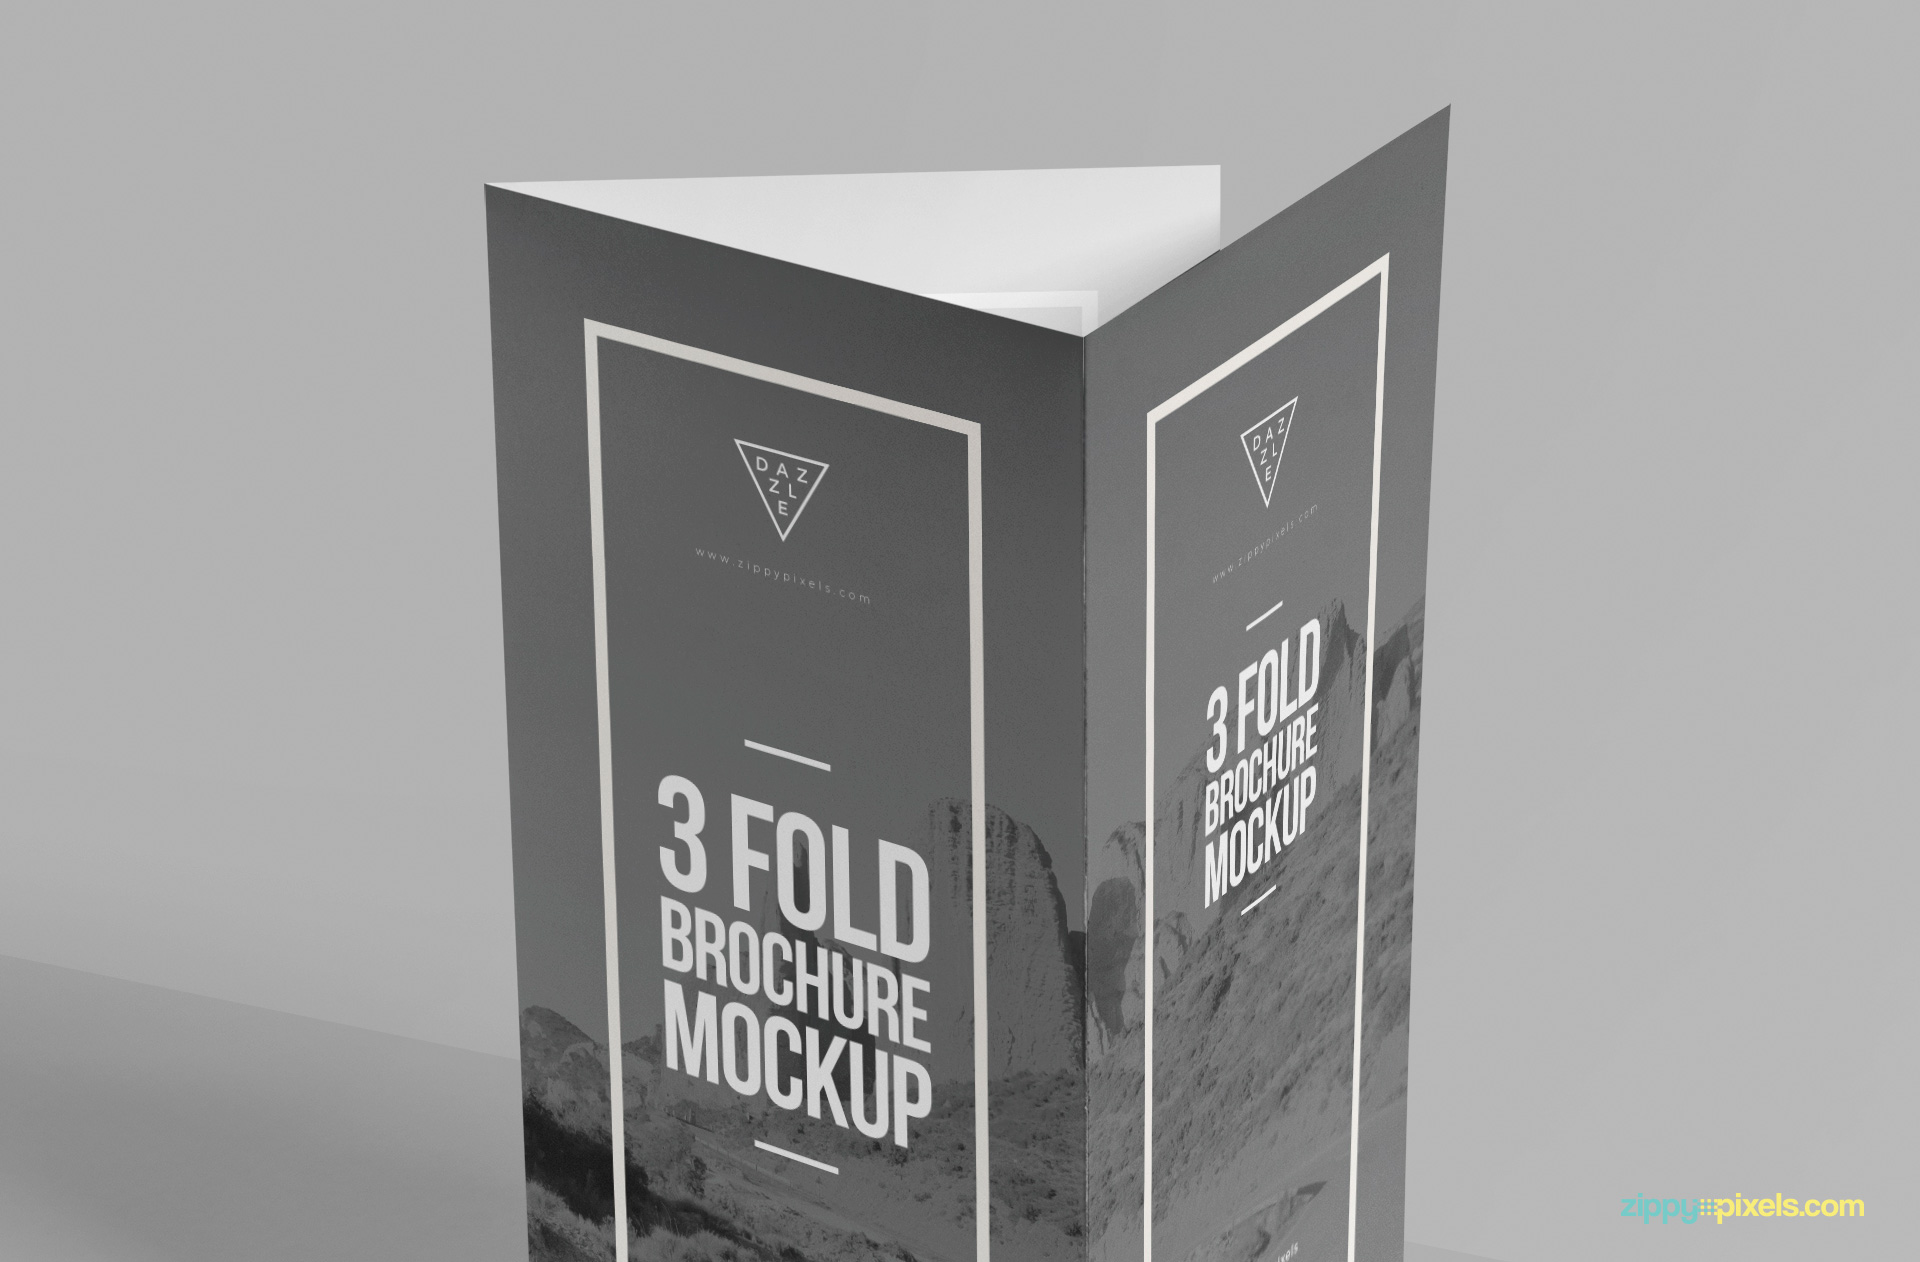 Shadows and background are adjustable of this brochure mockup.